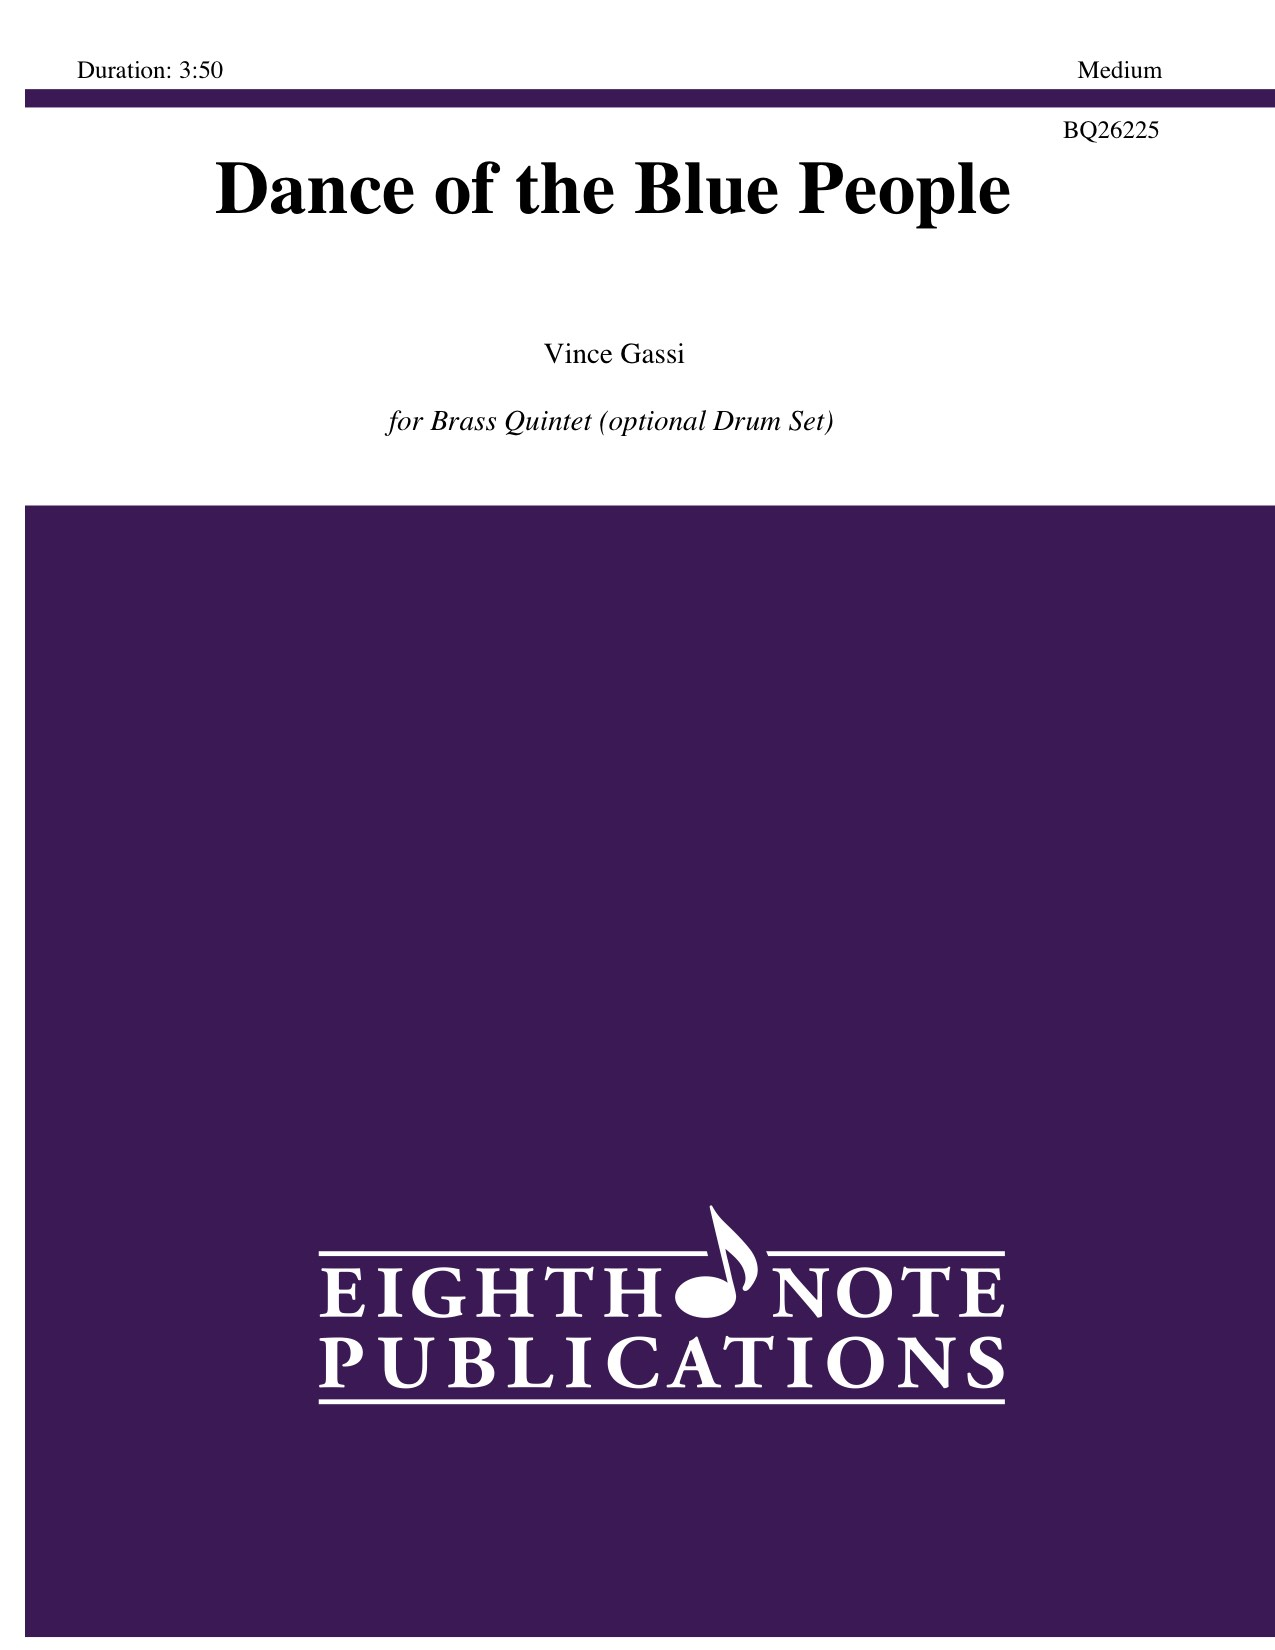 Dance of the Blue People - Vince Gassi